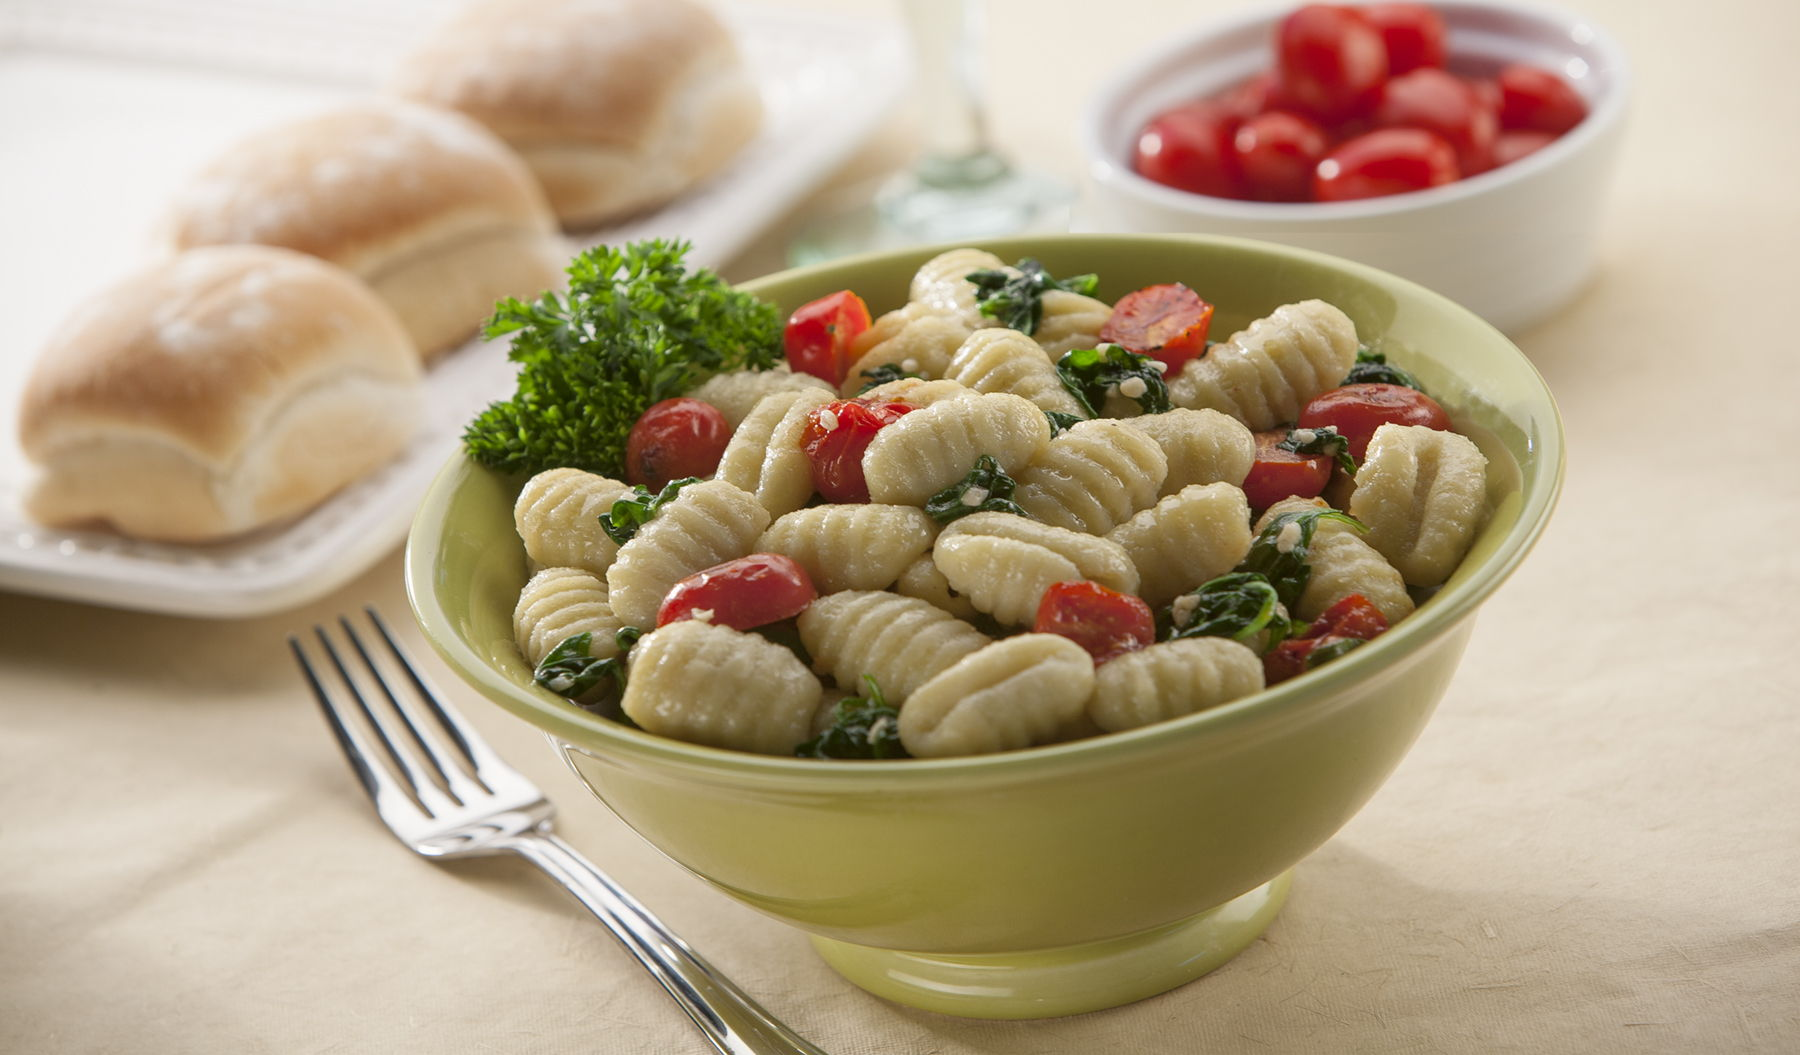 Gnocchi with Spinach, Tomatoes and Parmesan